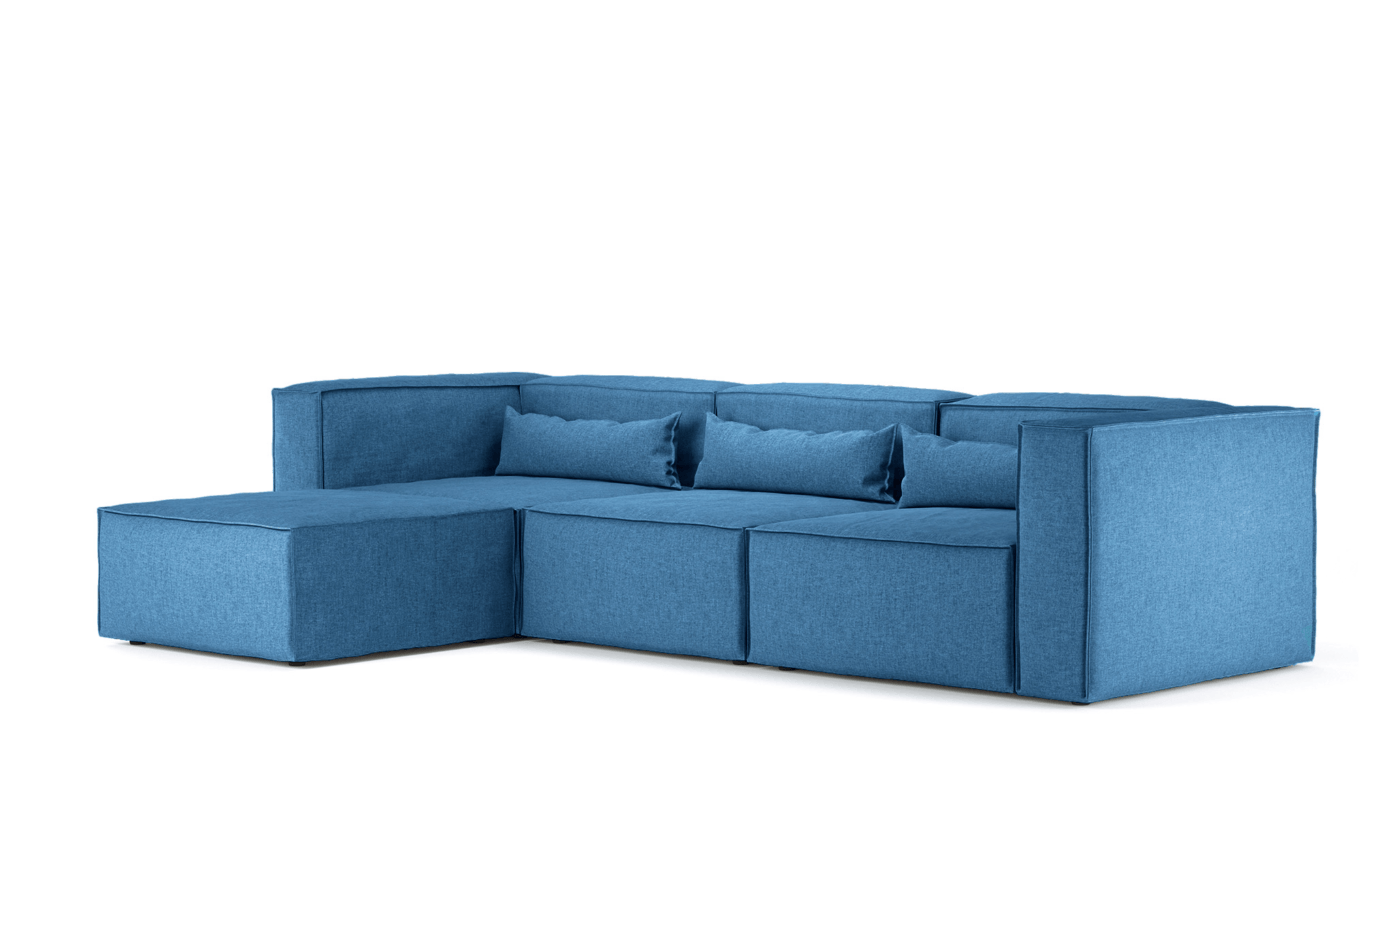 Sofa Petrol Is The Home Of Elegant Affordable Sofa Our